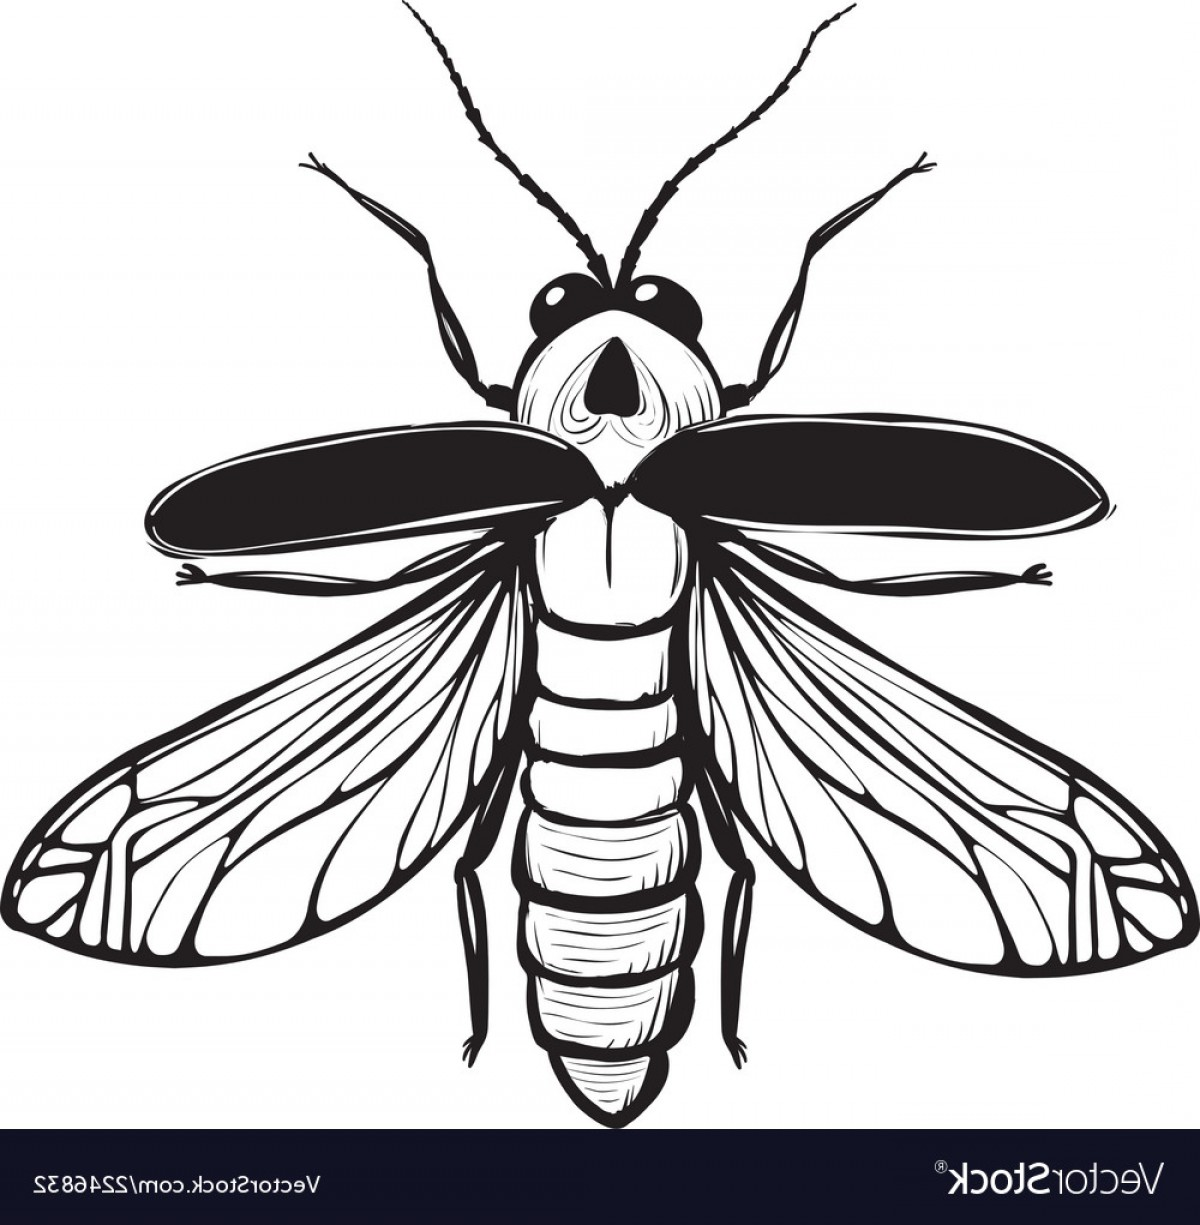 hight resolution of 1200x1225 firefly drawing firefly insect drawing